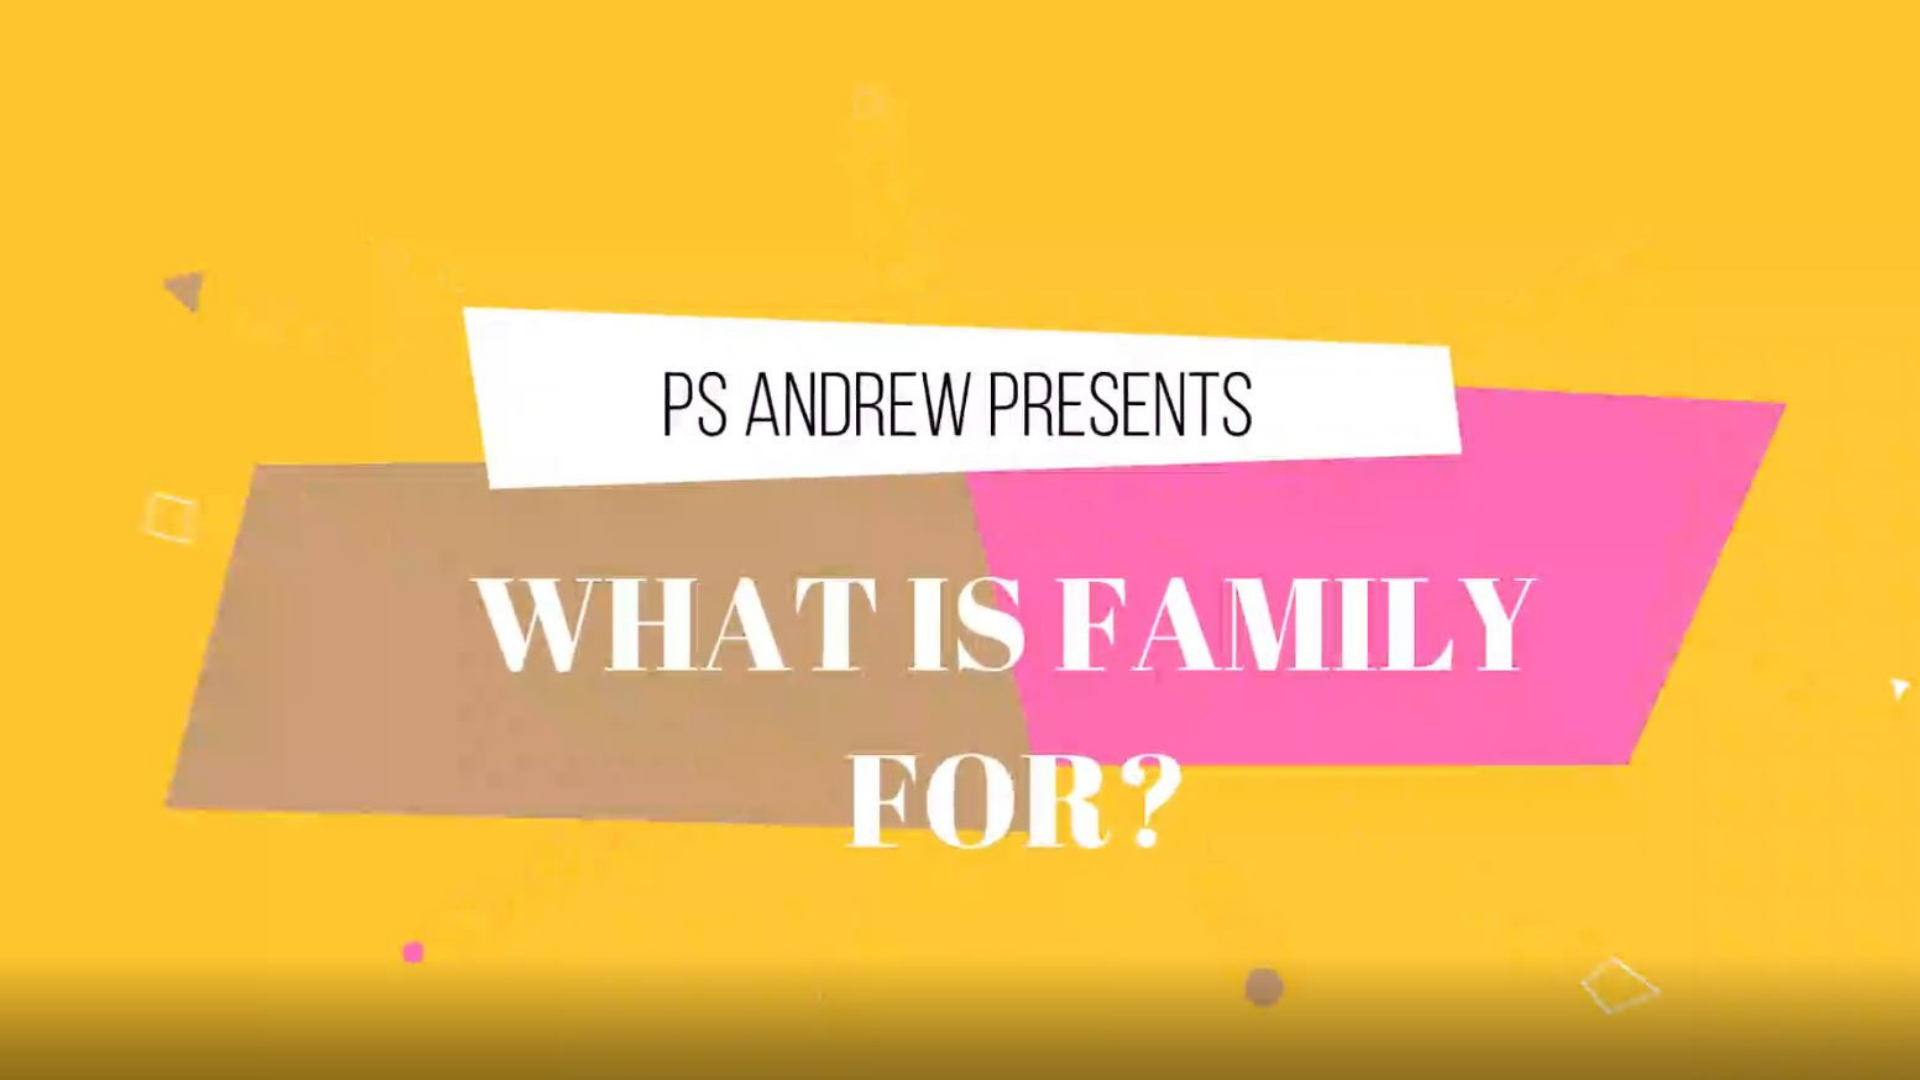 What is family for?